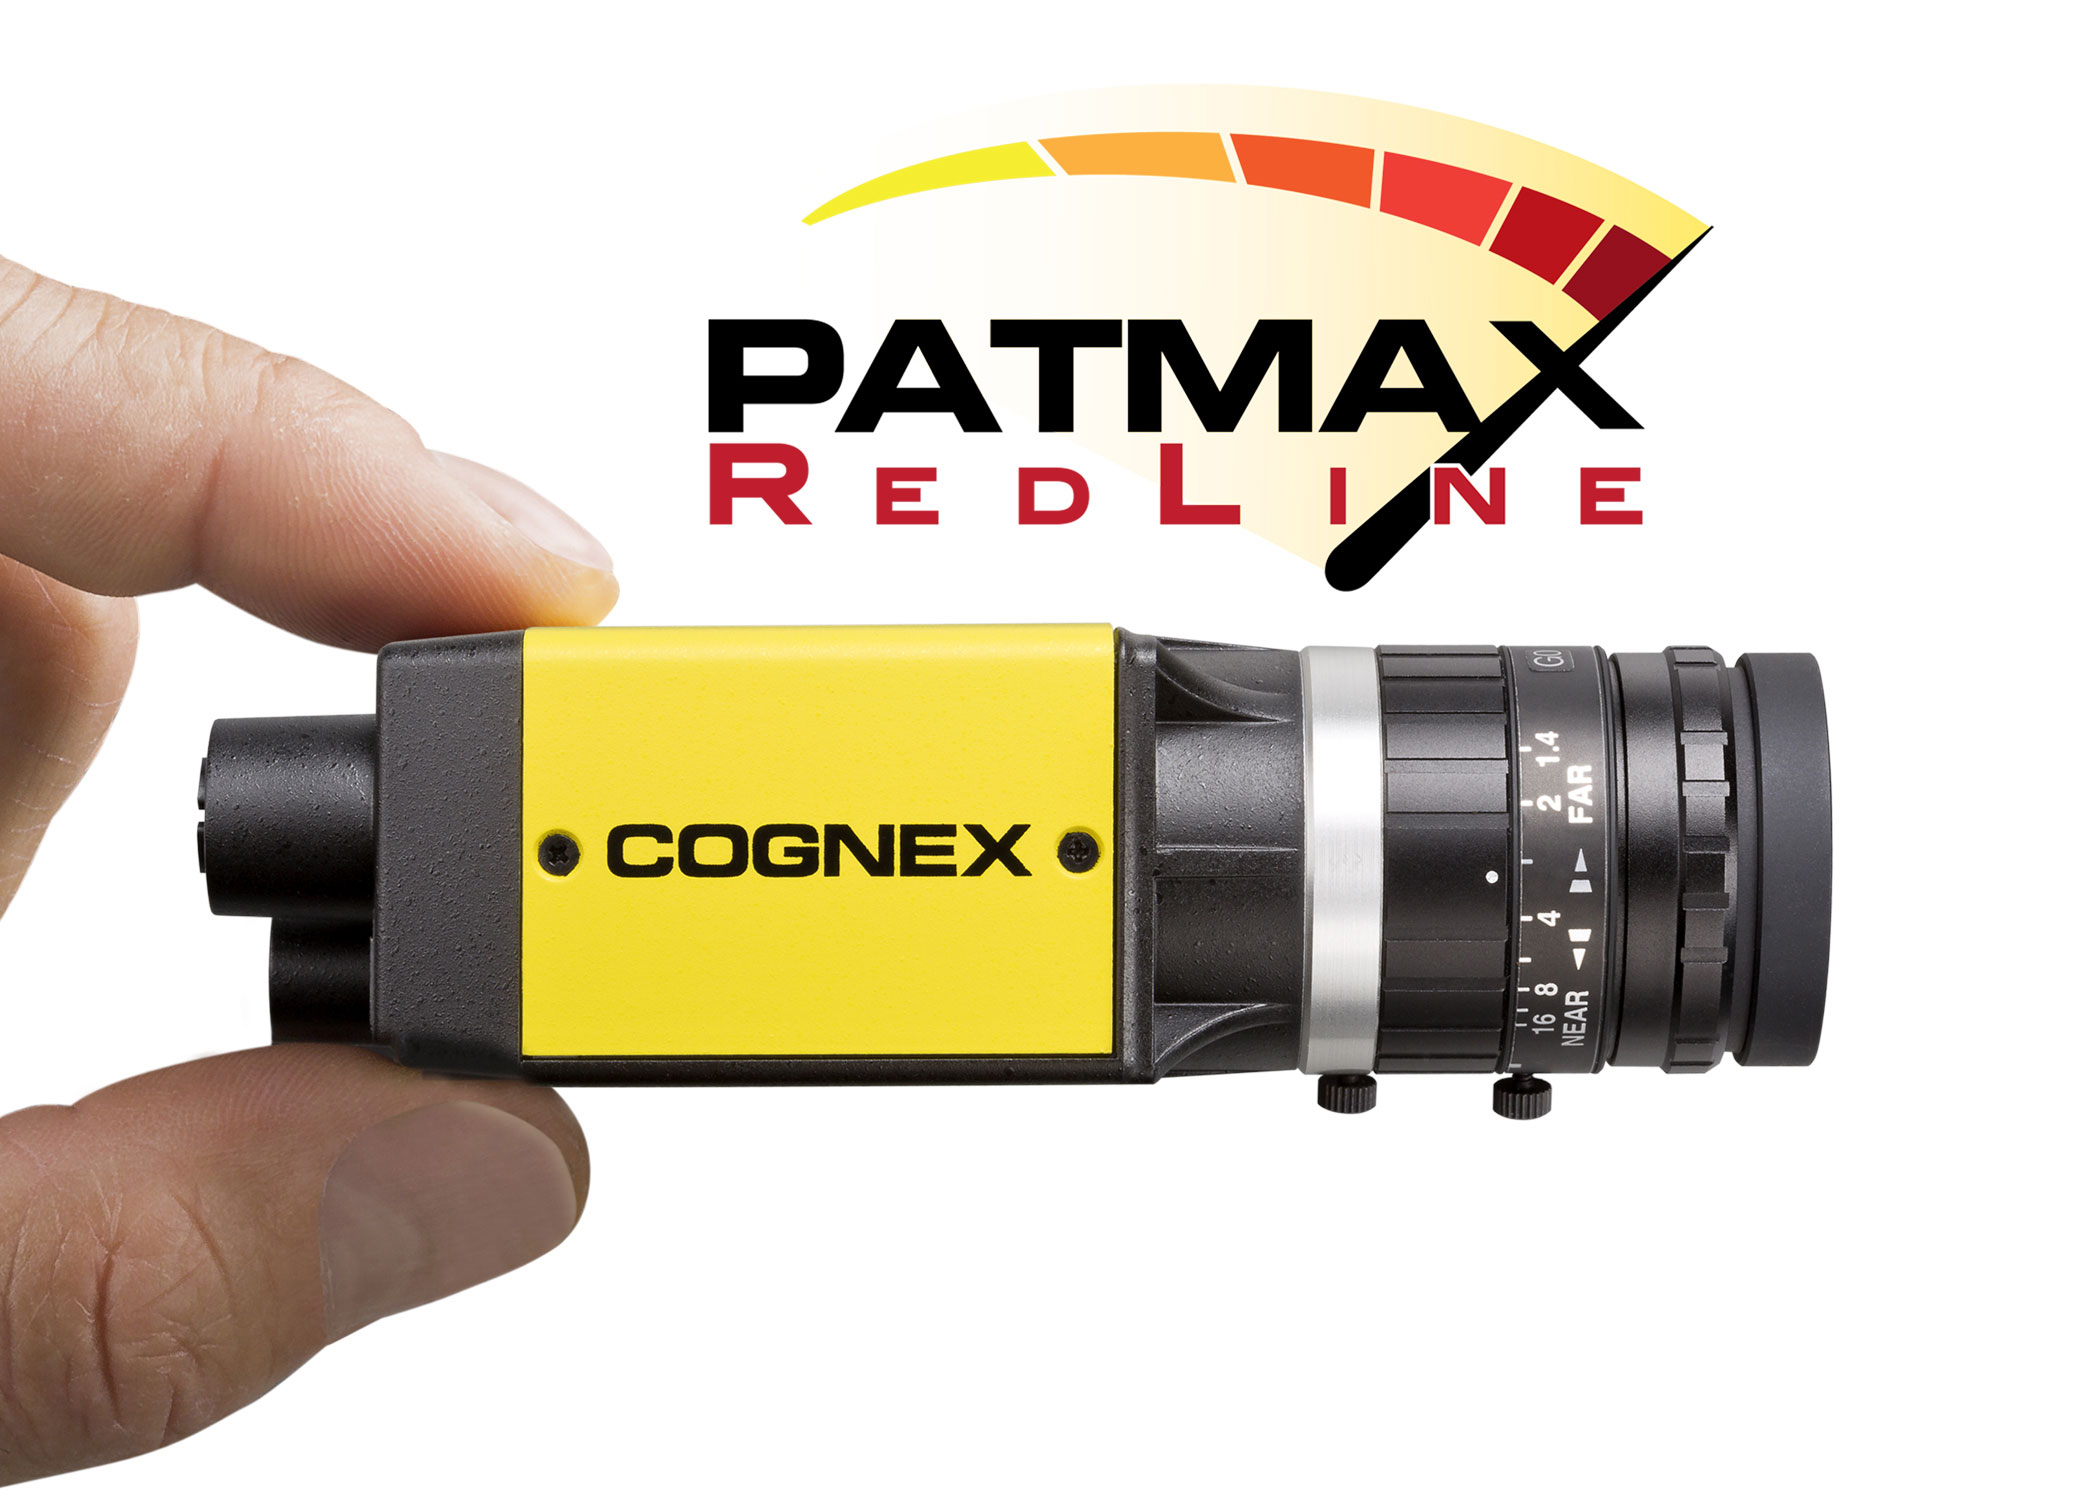 fingers holding cognex IS8000 with patmax redline logo